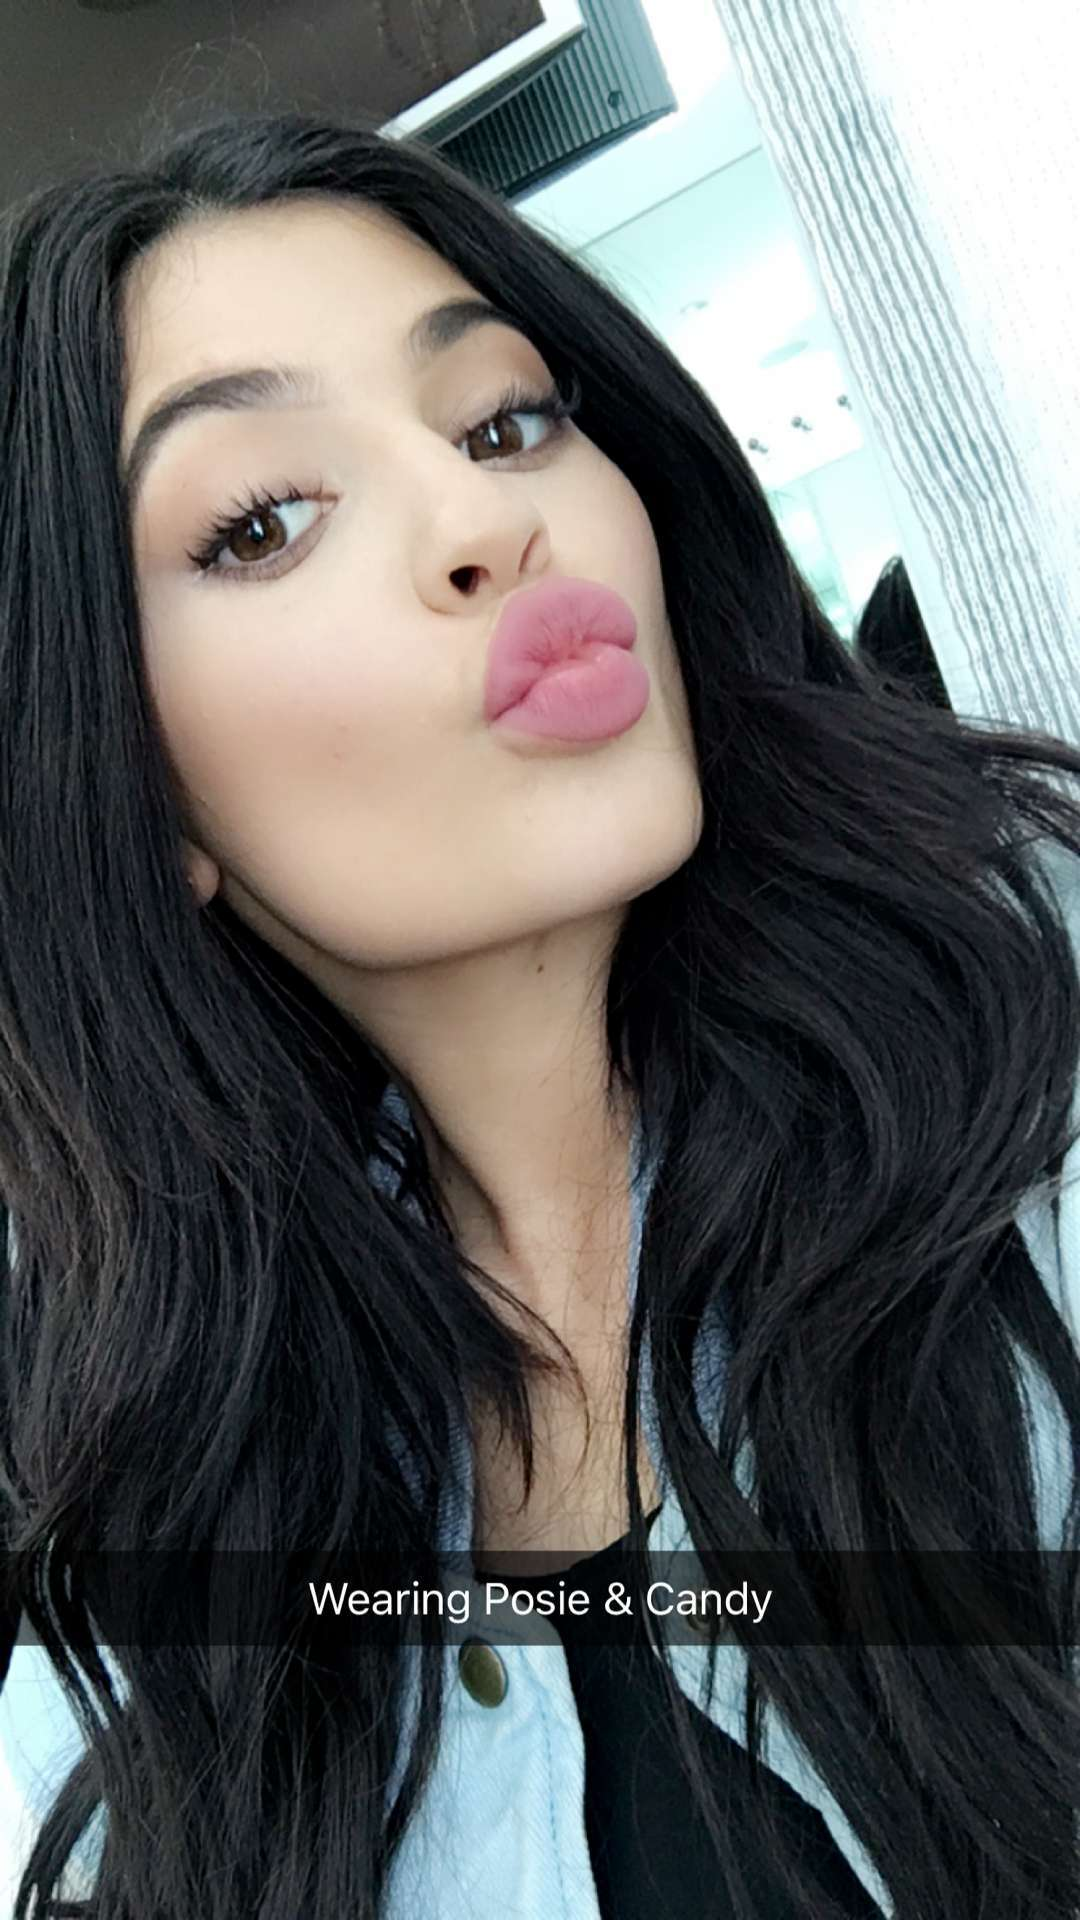 Kylie Jenner Iphone Wallpapers Top Free Kylie Jenner